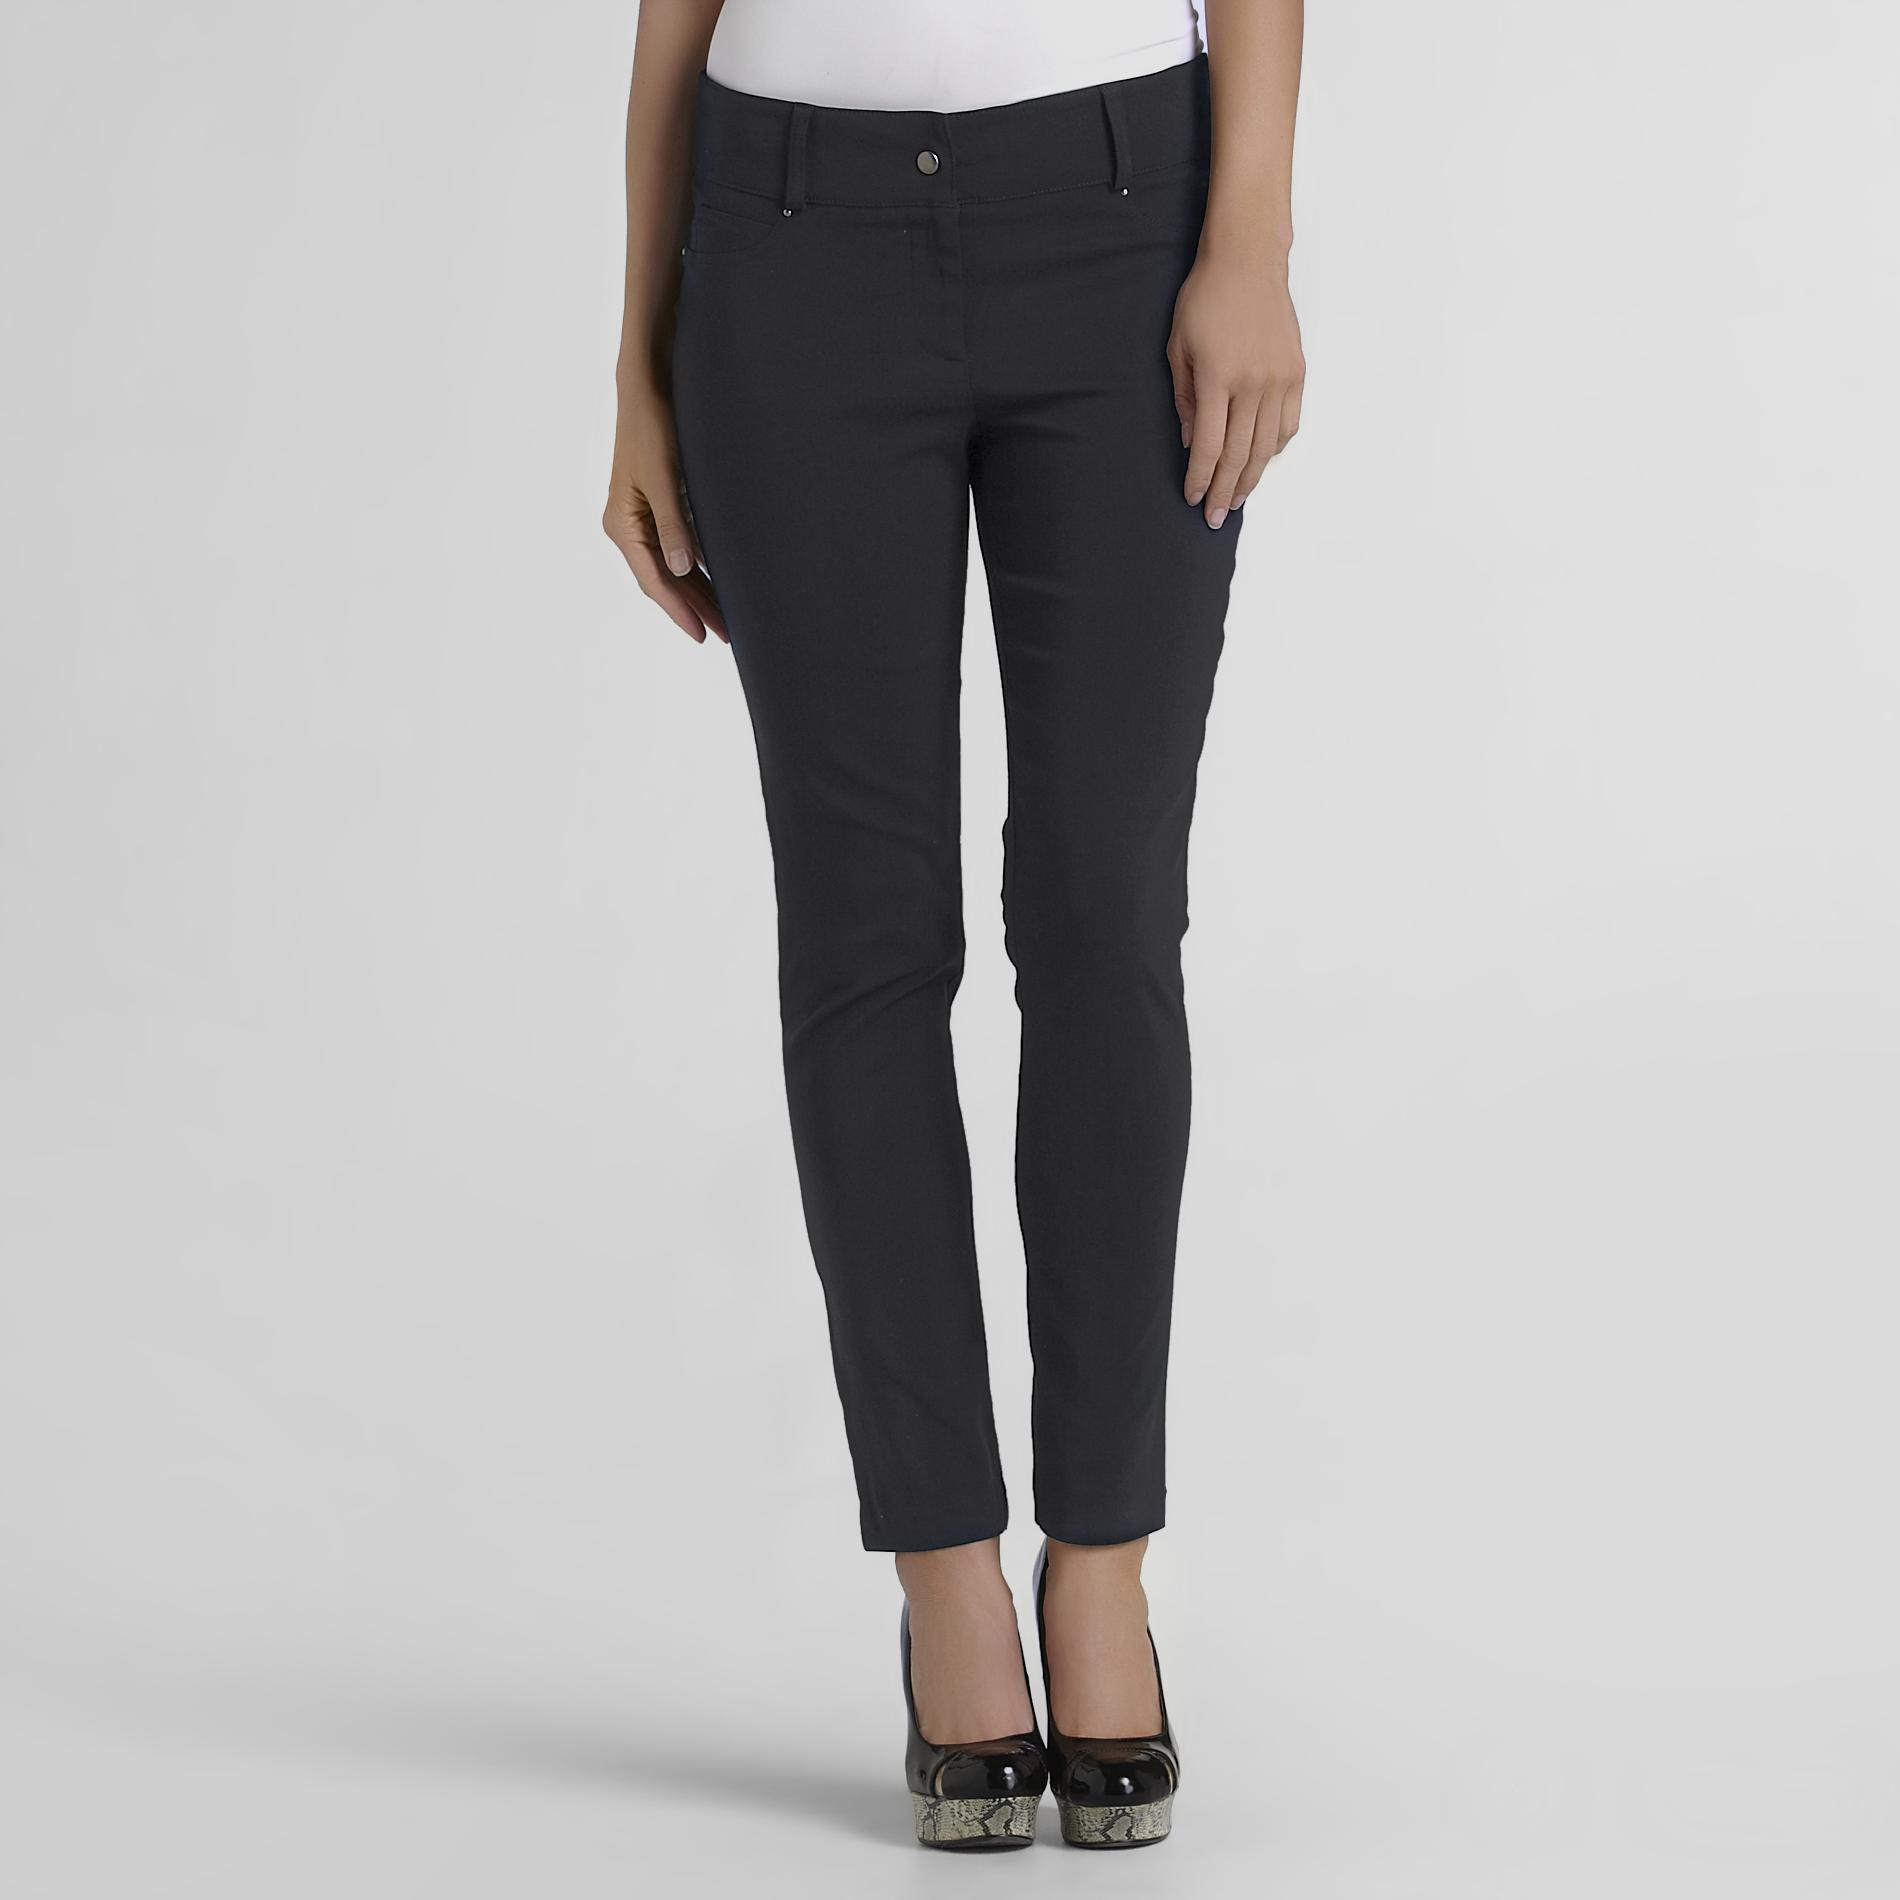 Metaphor Women's Five Pocket Skinny Pants at Sears.com